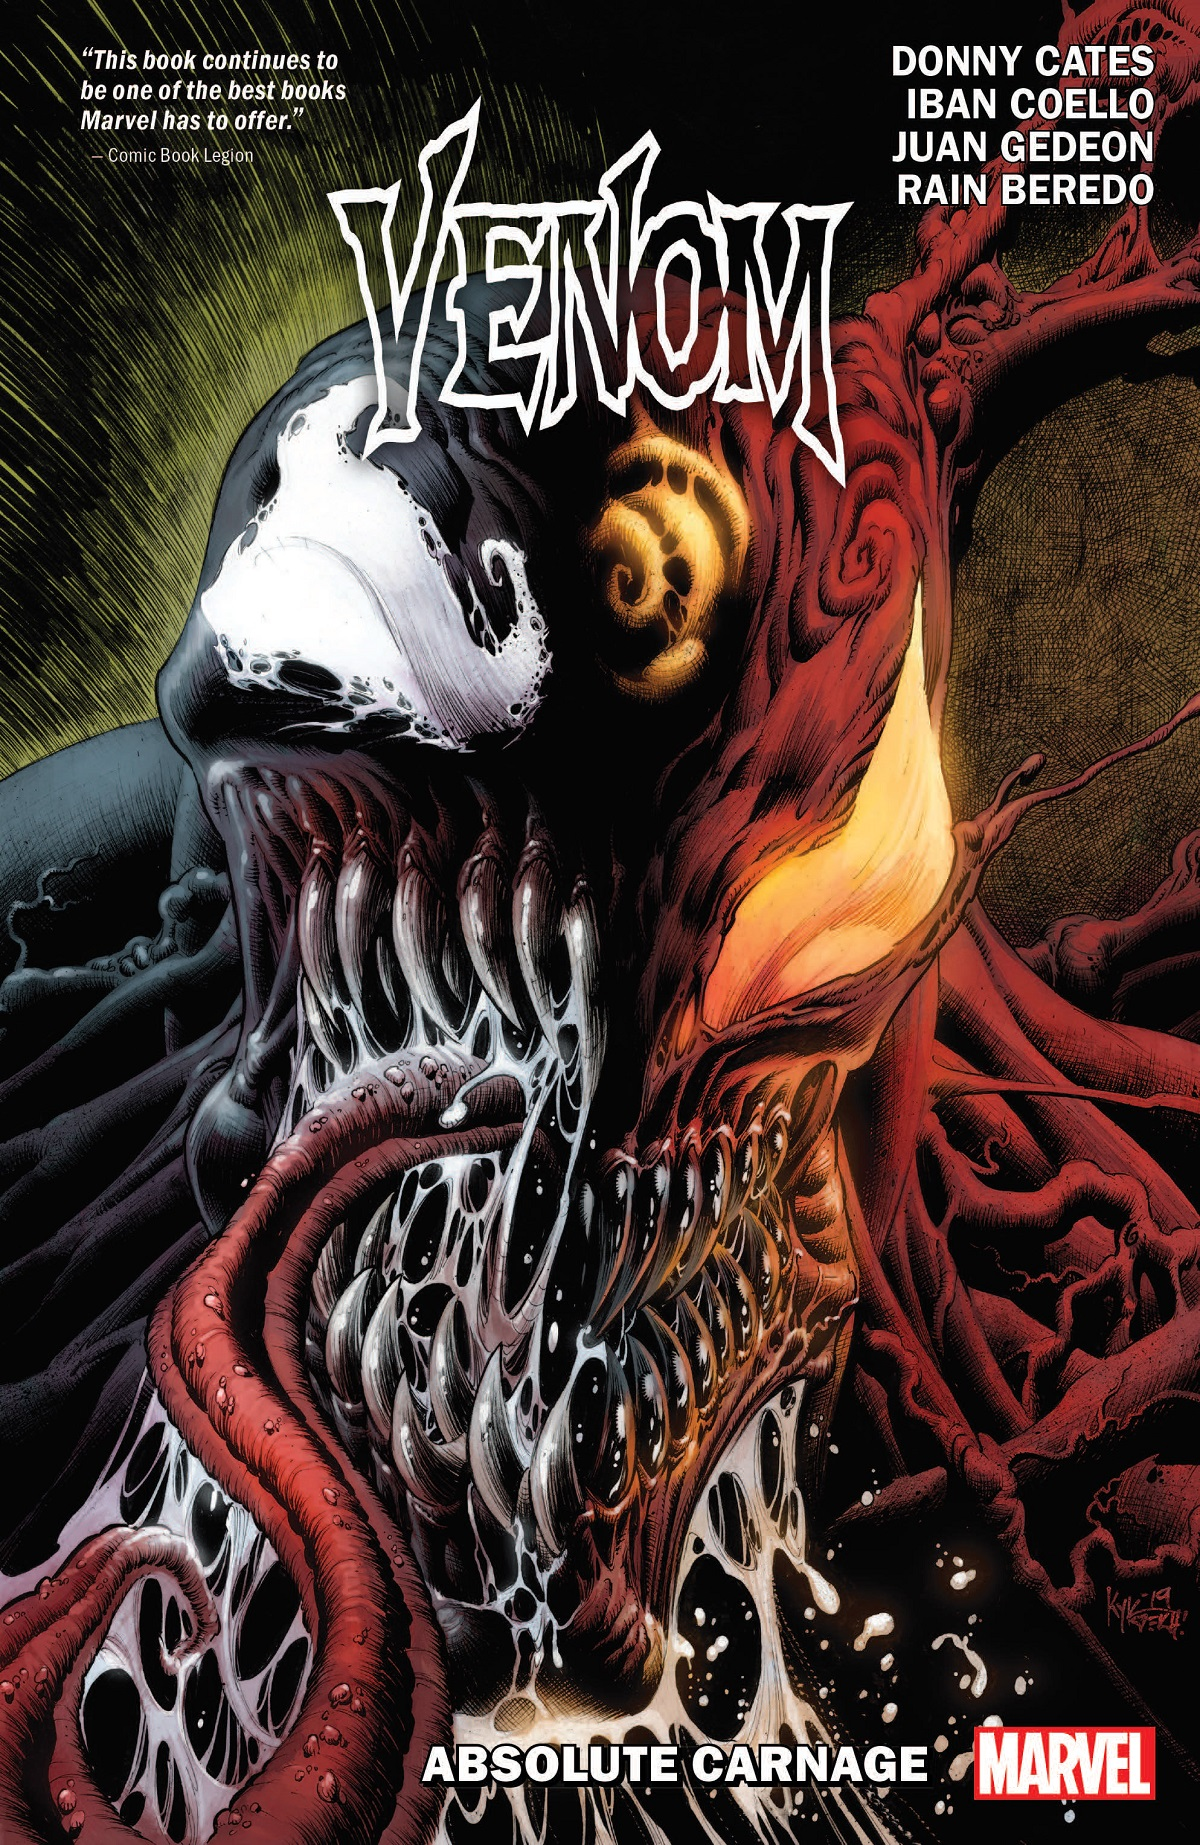 Venom By Donny Cates Vol. 3: Absolute Carnage (Trade Paperback)